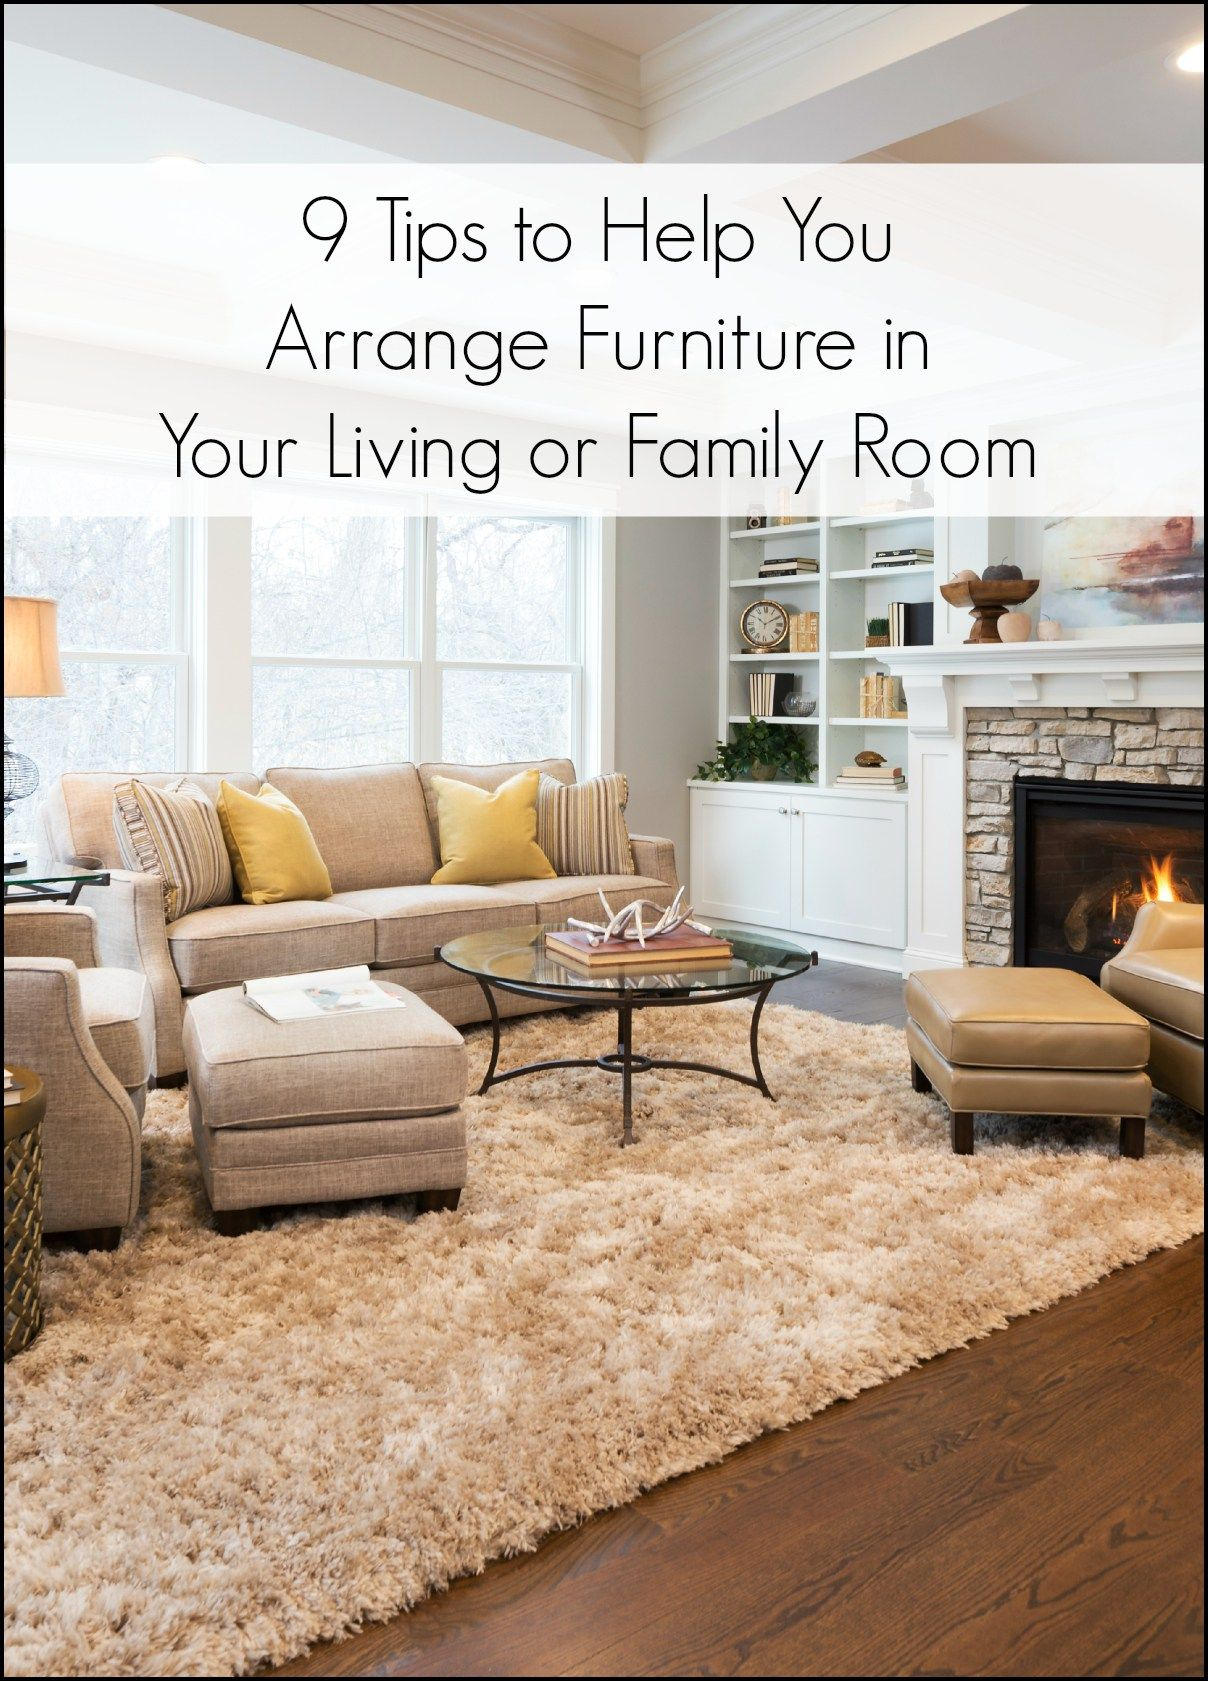 Superieur 9 Tips To Help You Arrange Furniture In Your Living Room Or Family Room